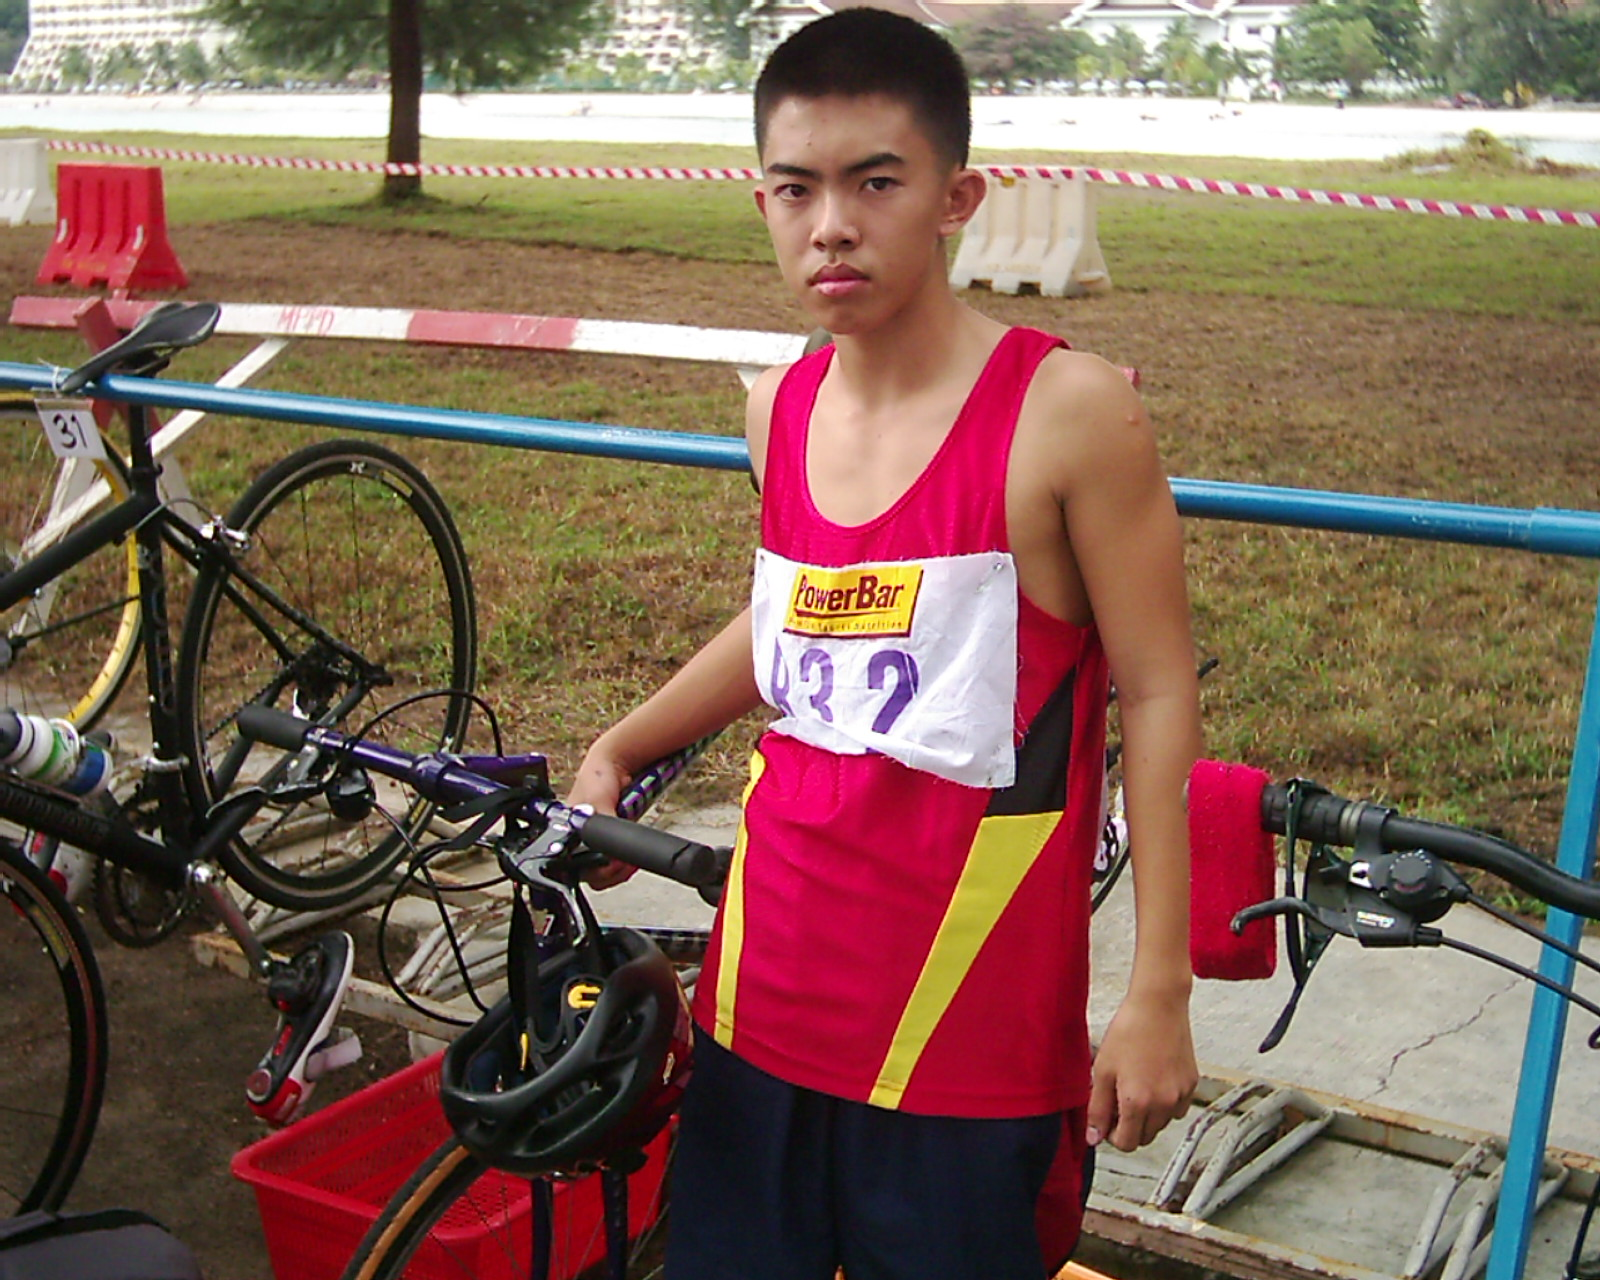 before i graduated from RMC i pleted 2 sprint triathlons and 1 OD with a steel bike